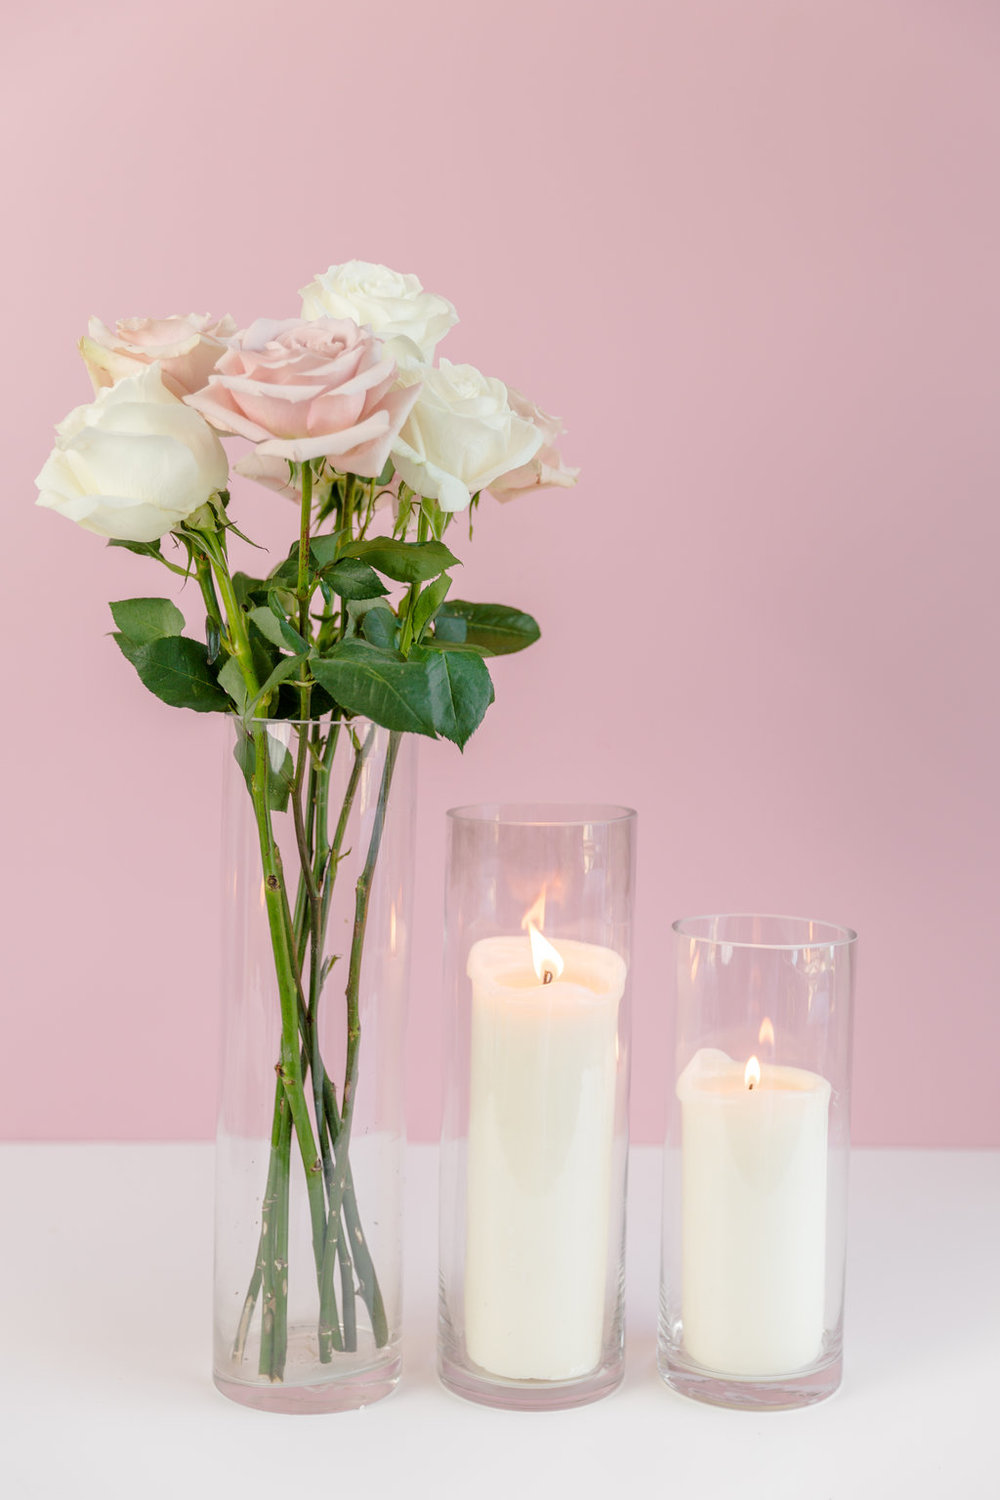 Glass Floral Pillar Vases  $5 - $12. Multiple sizes available.